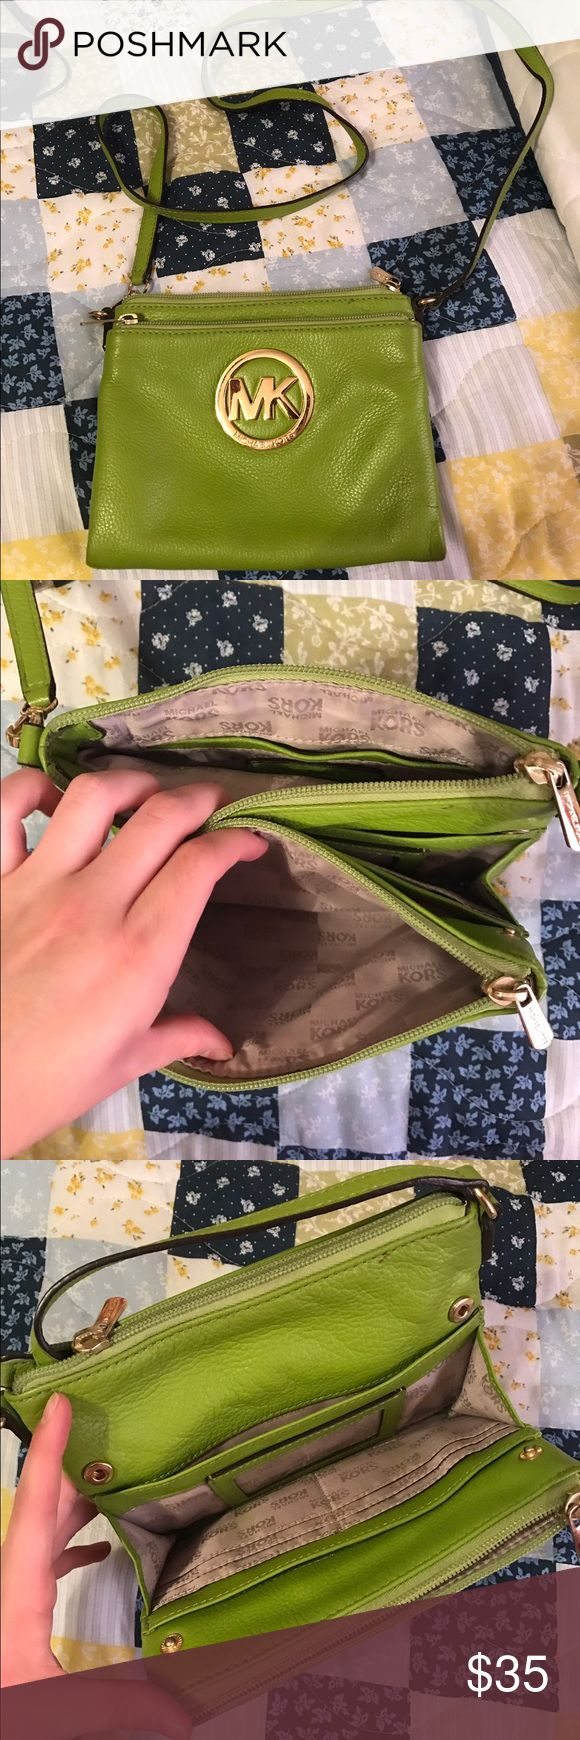 Green Michael Kors cross body purse This is a small cross body purse, has many pockets and slots for your cards and etc. Perfect size for traveling or just packing everyday! In good condition. Michael Kors Bags Crossbody Bags